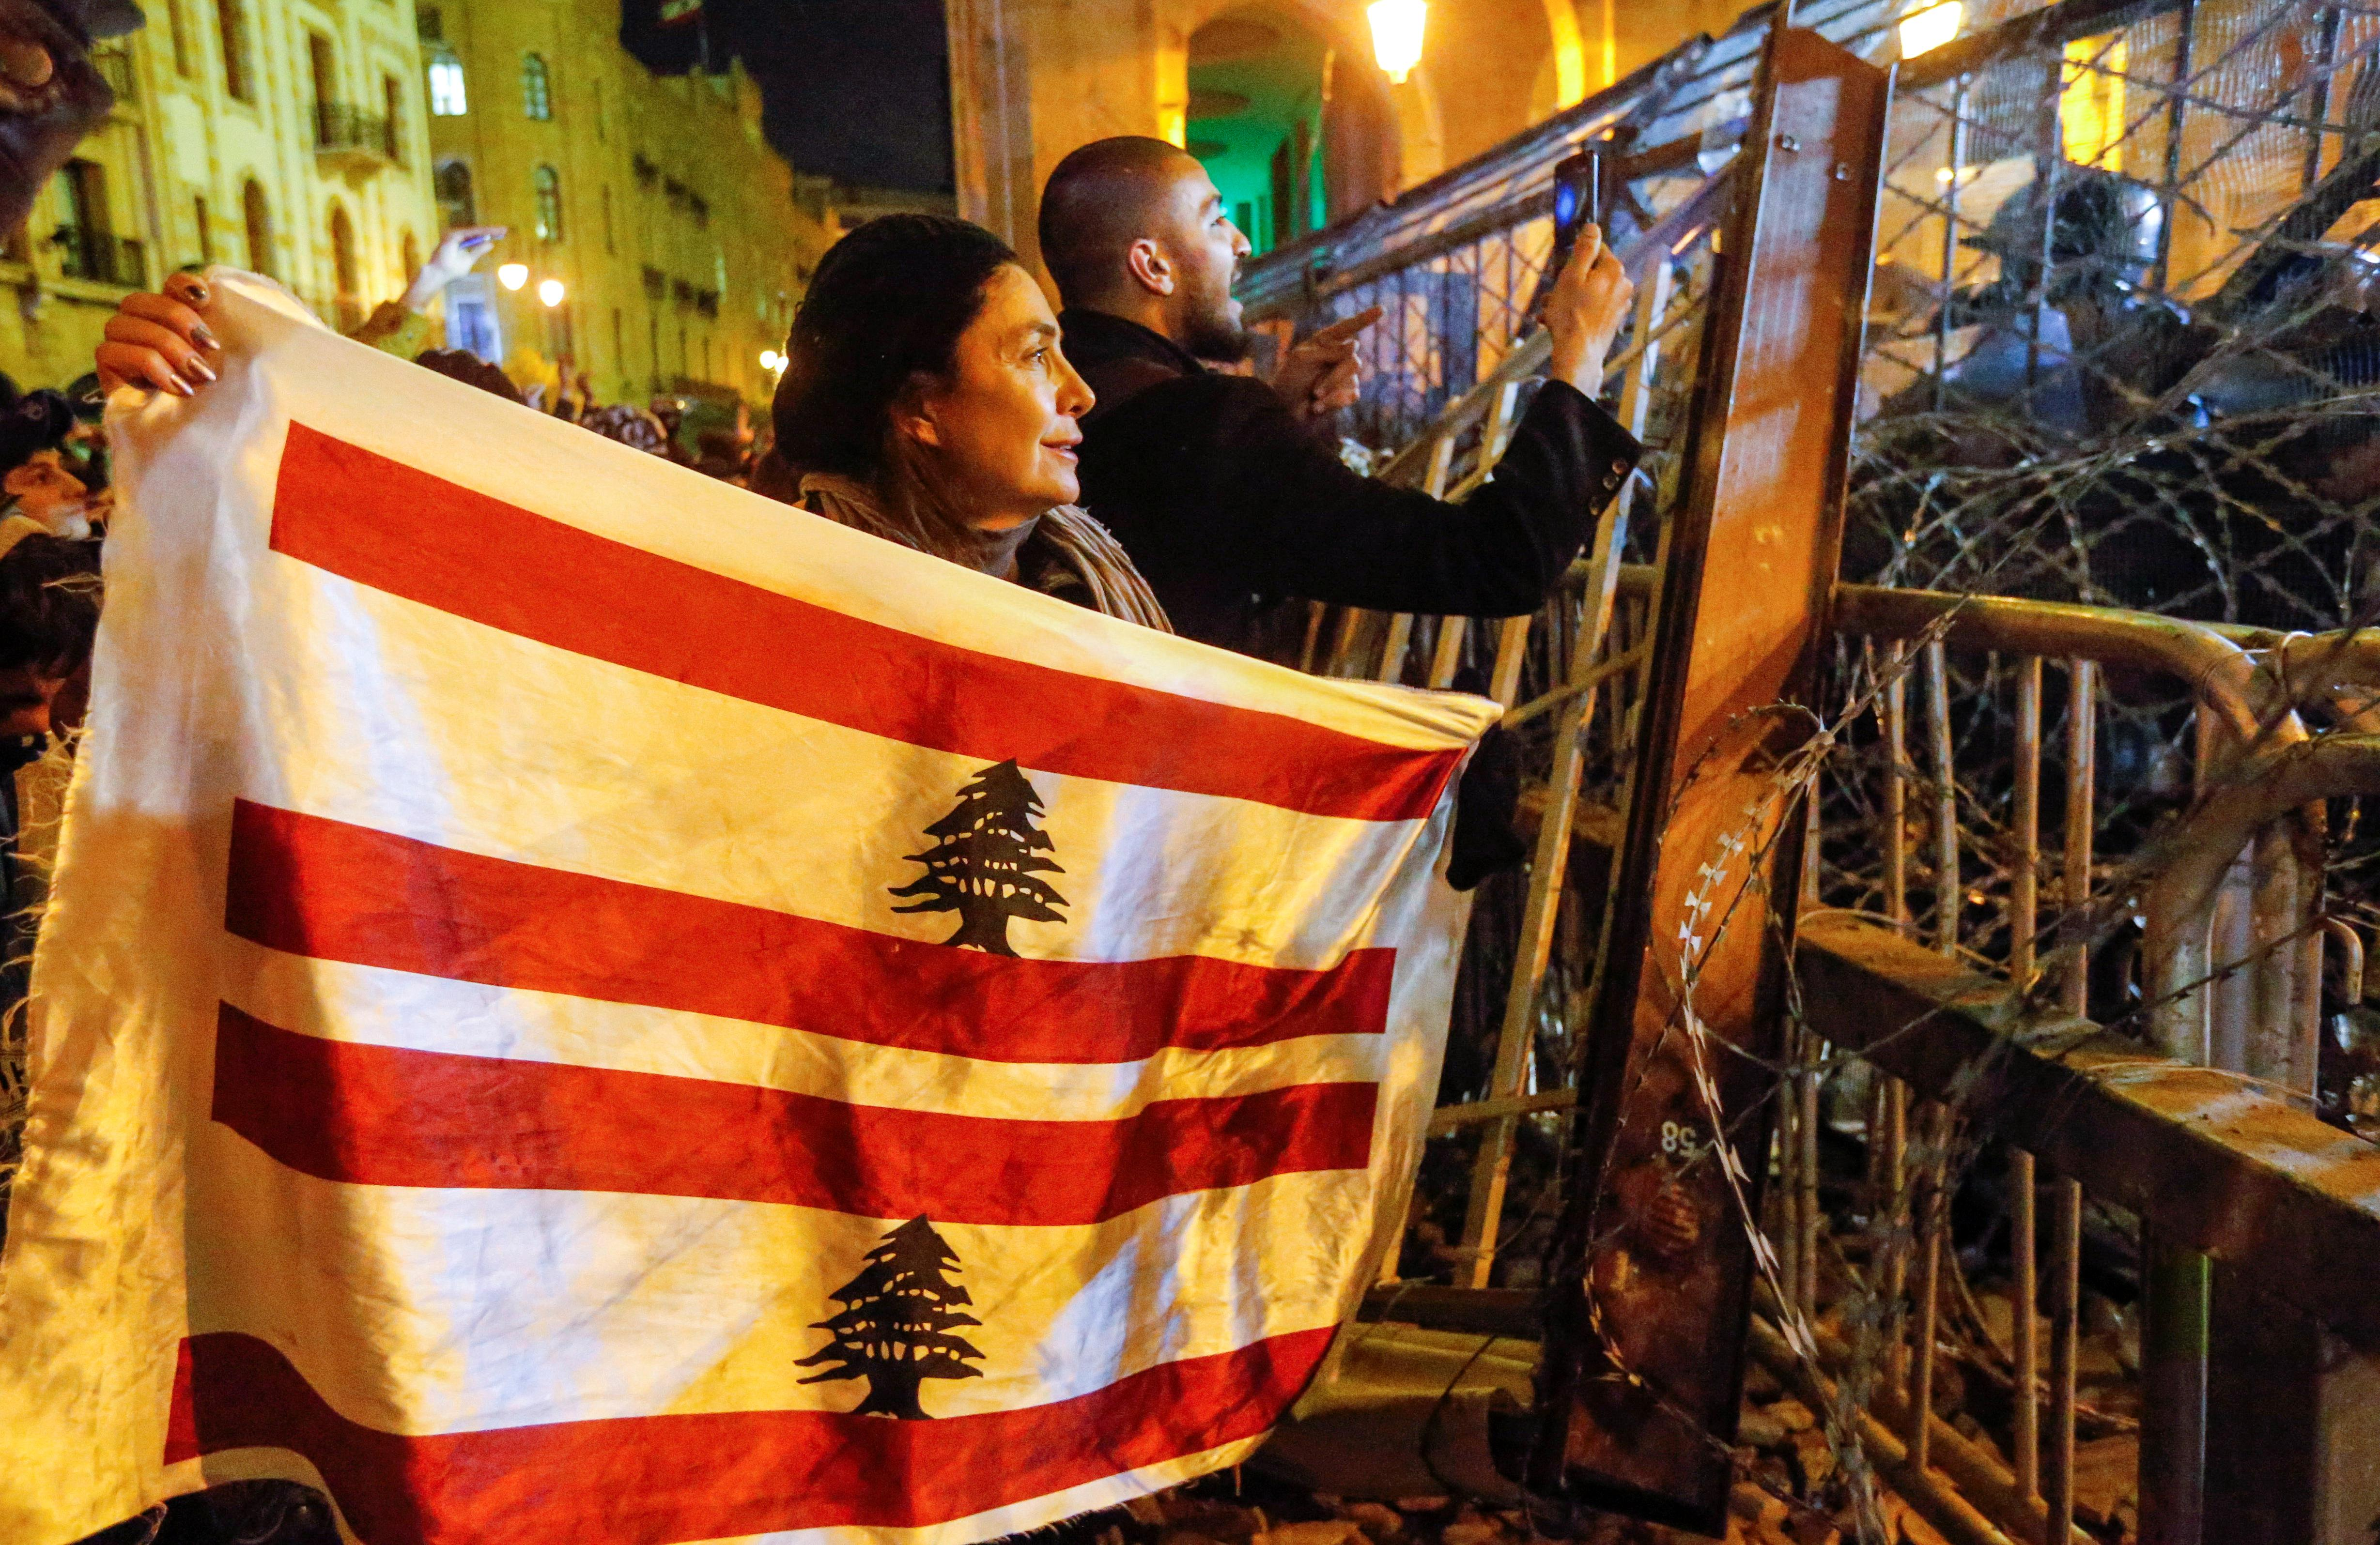 Lebanese security forces, protesters clash for second night